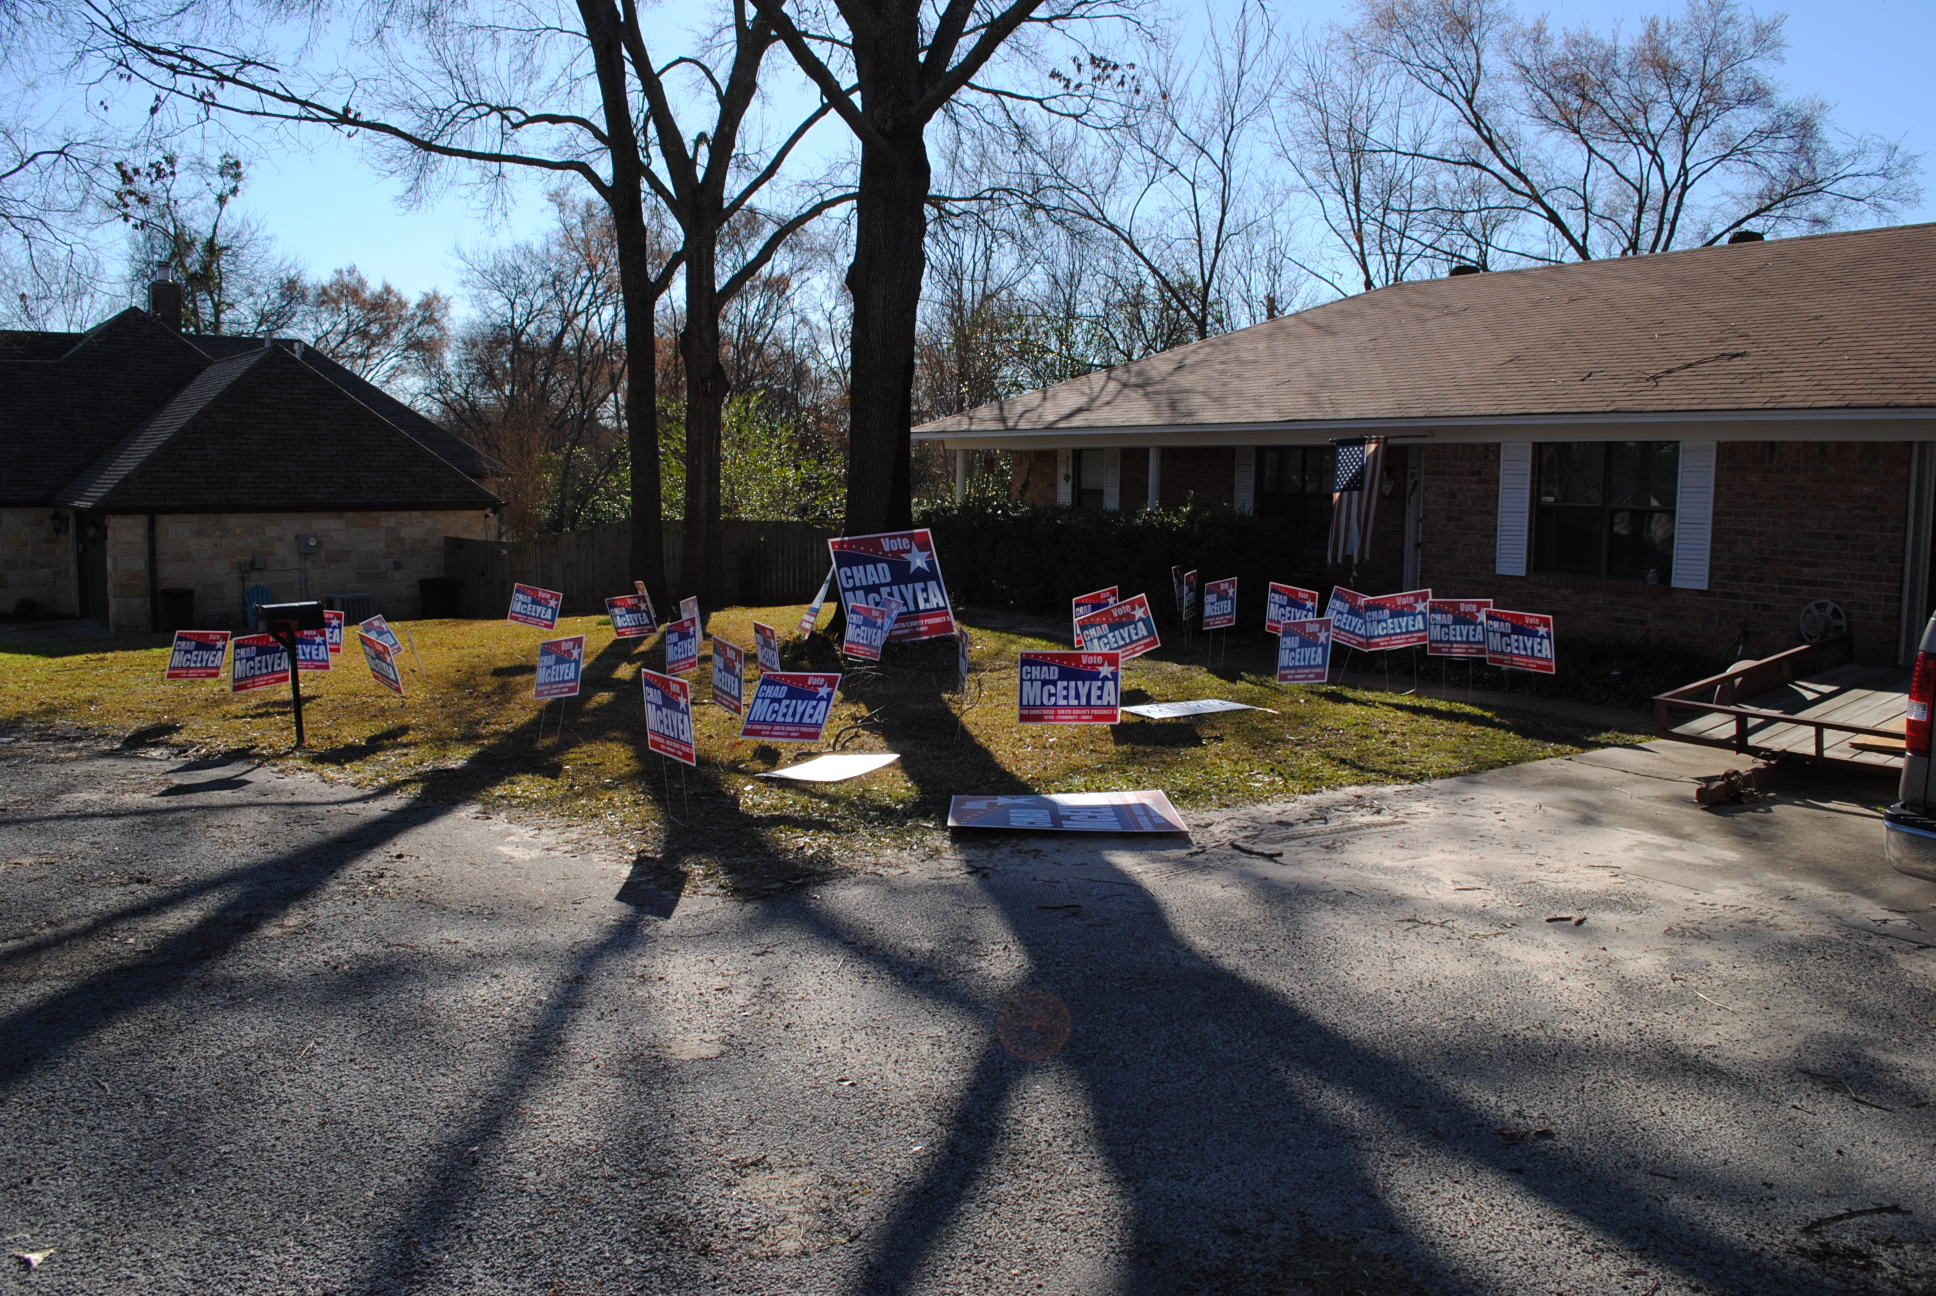 Missing campaign signs found in Smith County yard